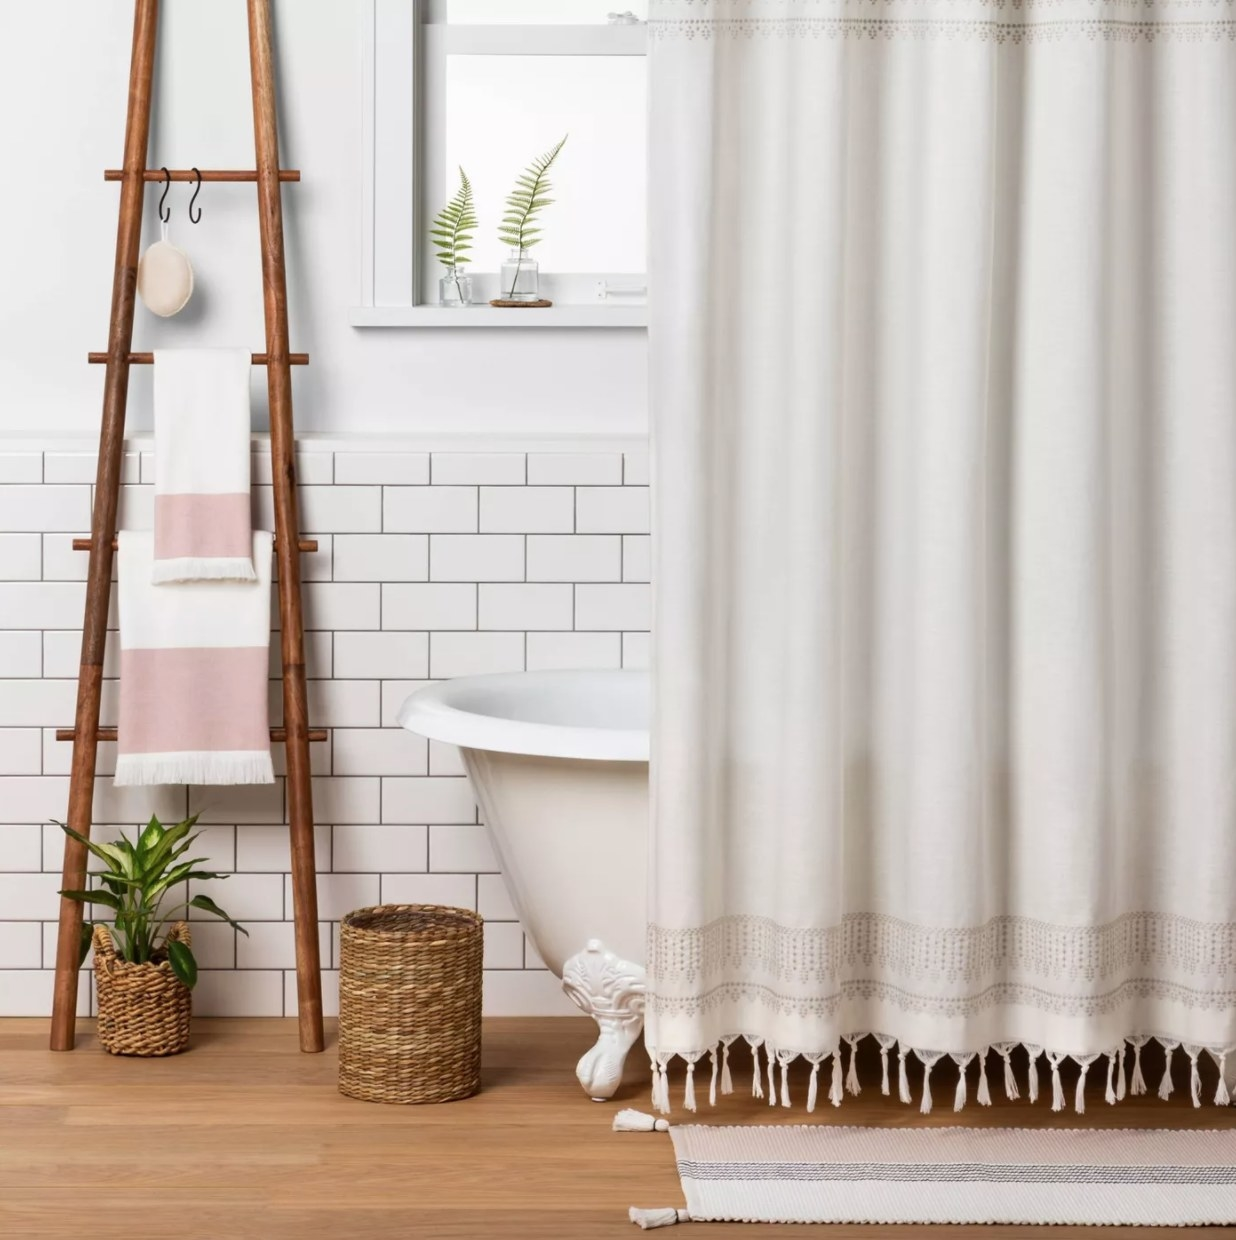 A wooden decorative ladder leaning against a wall